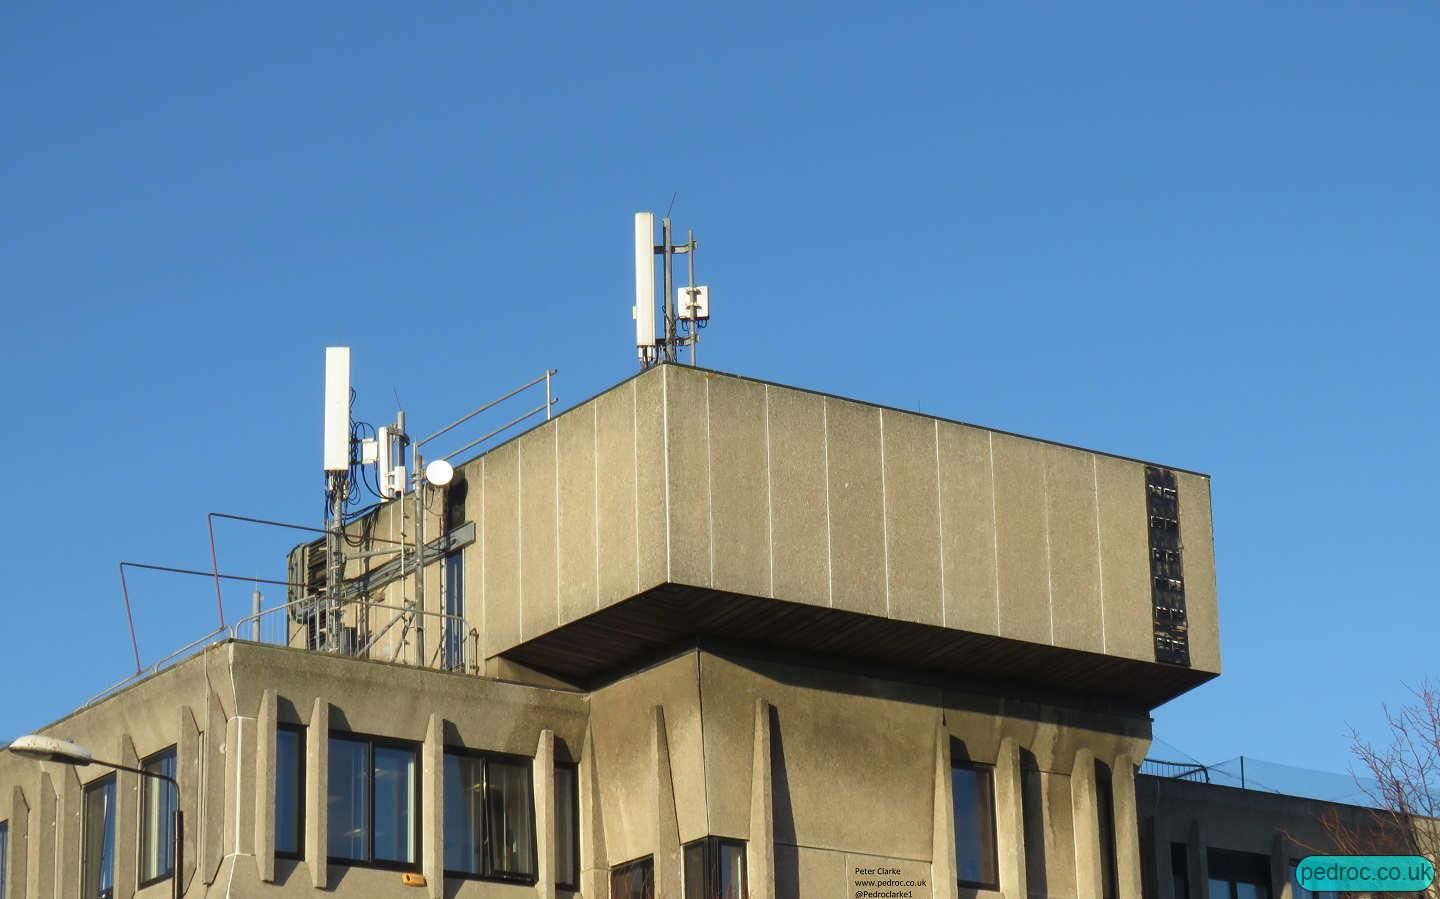 Pavilion House, centre of Scarborough Site with all mobile networks on the rooftop.